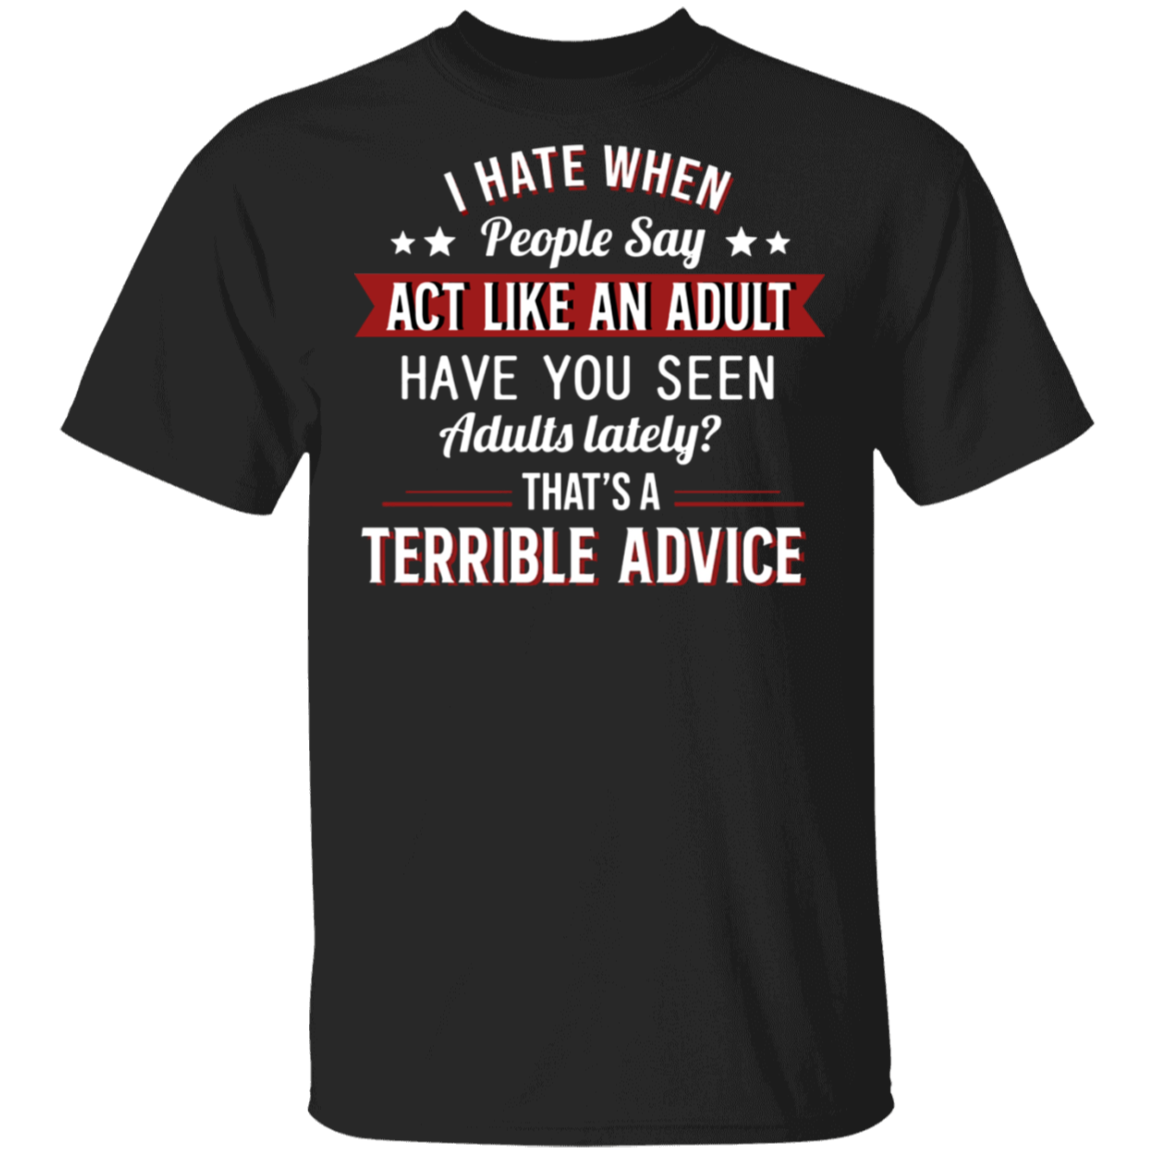 I Hate When People Say Act Like An Adult Shirt Wise Men Saying